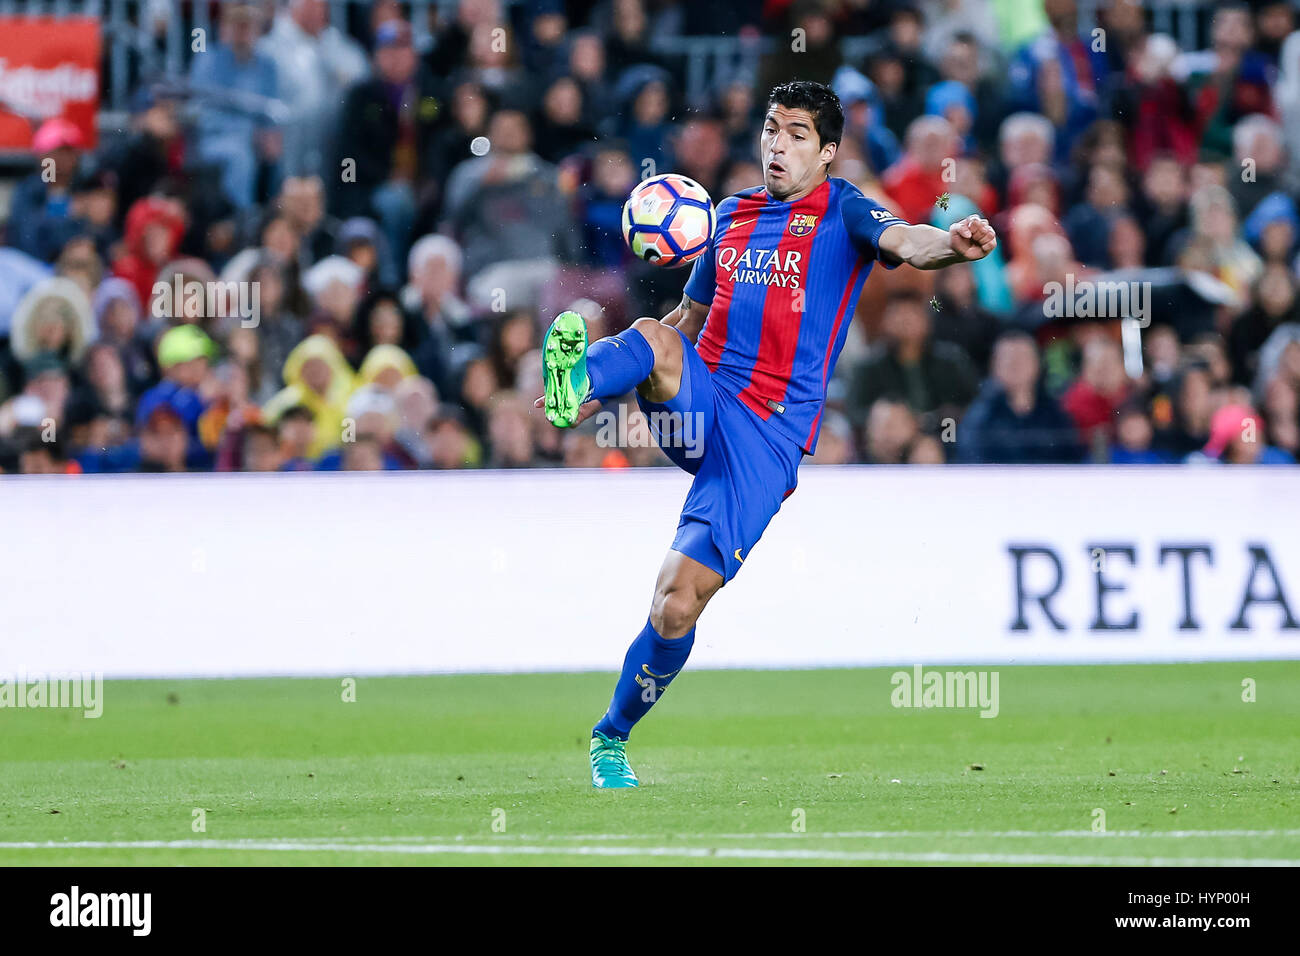 April 5, 2017: Luis Suarez during the match between FC Barcelona vs Sevilla, for the round 30 of the Liga Santander, - Stock Image